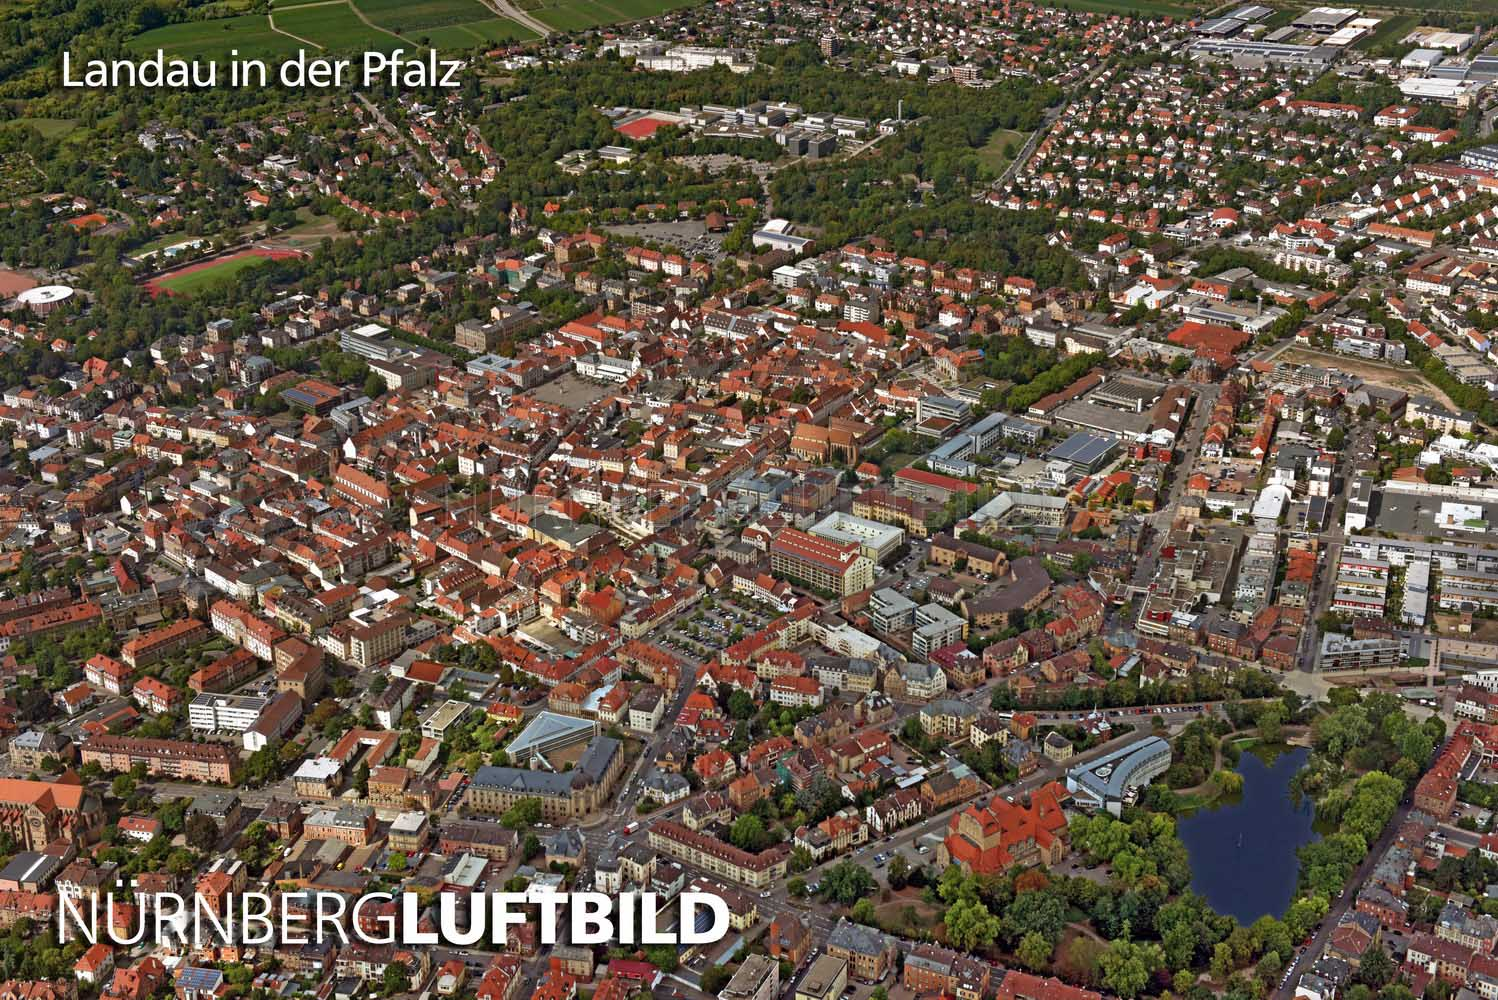 Single landau in der pfalz